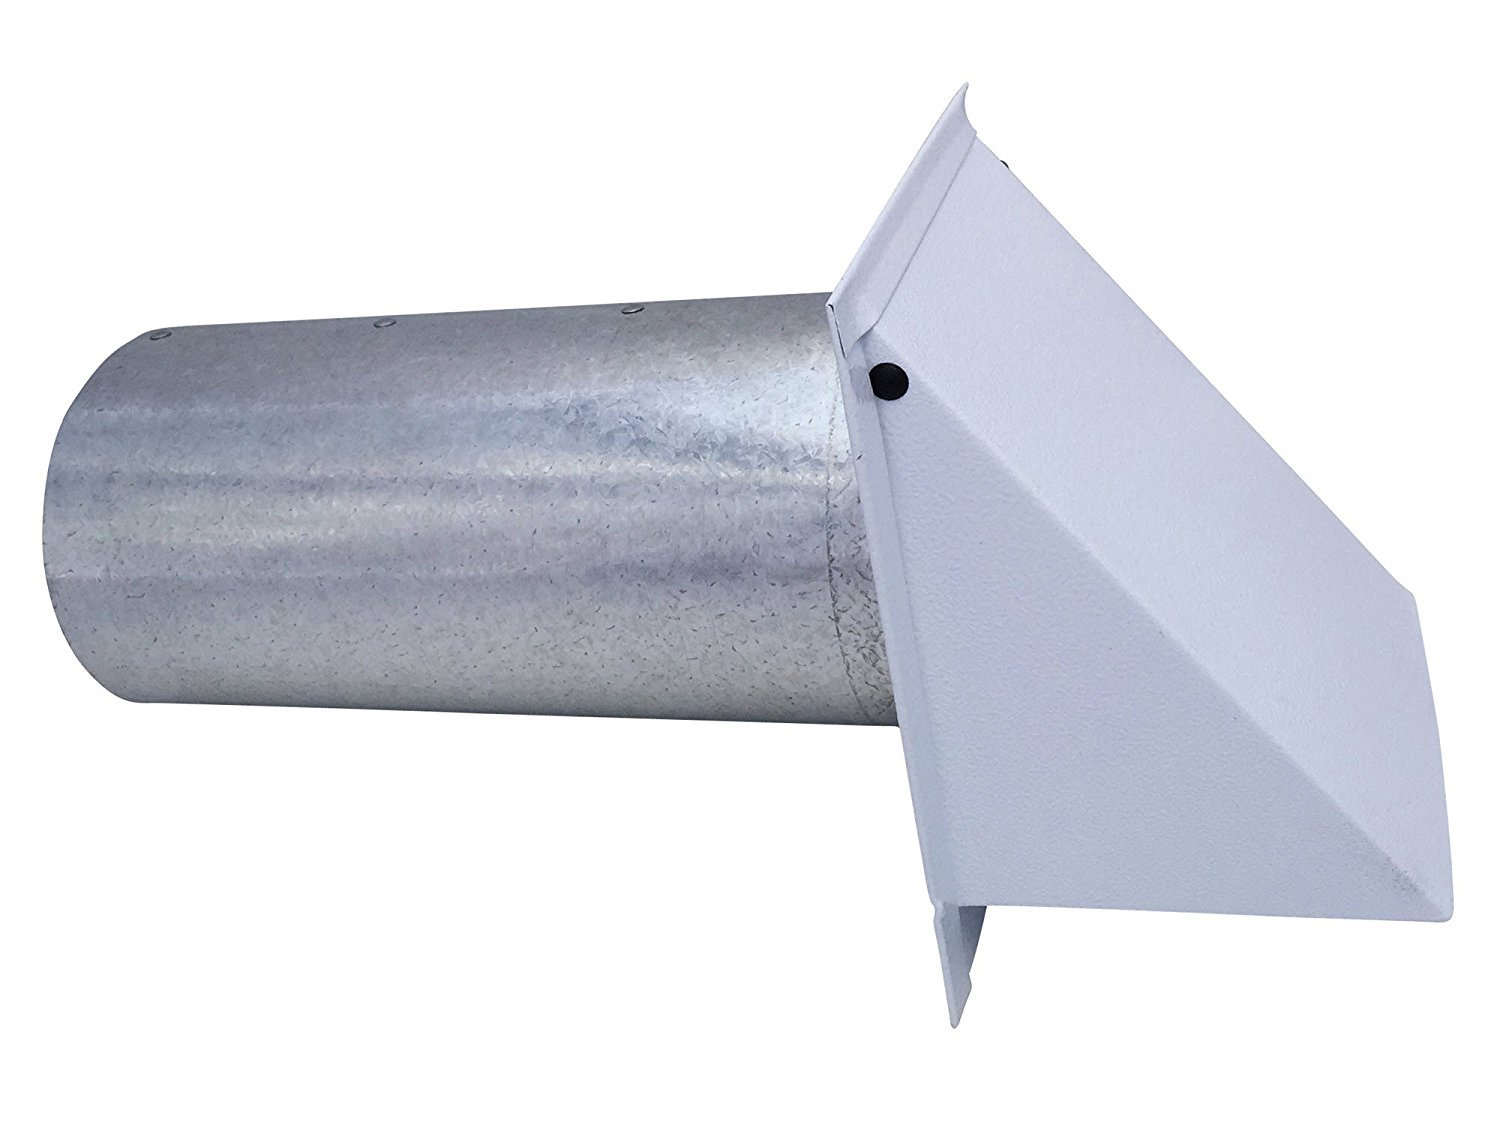 4 Inch Wall Vent Painted White Screen Only (4 Inch diameter) - Vent Works by Vent Works (Image #1)